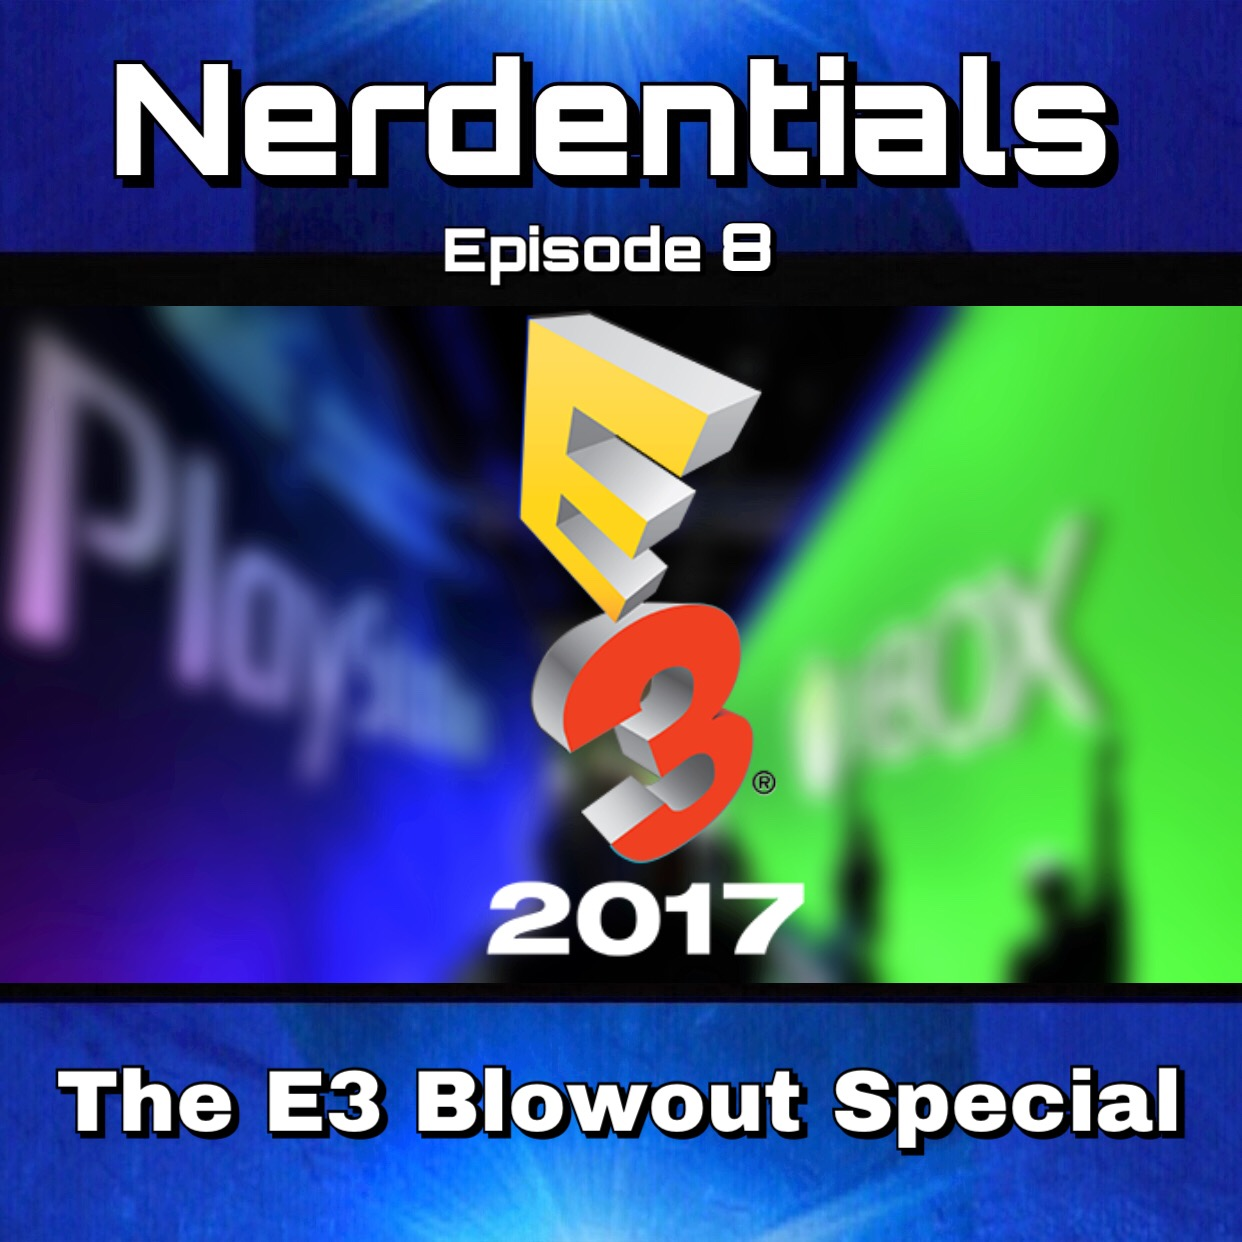 - This week, the nerds blast your ears with a list of everything that went down at one of the biggest game developers conventions, E3! The Electronic Entertainment Expo! Sit back and join the hype!